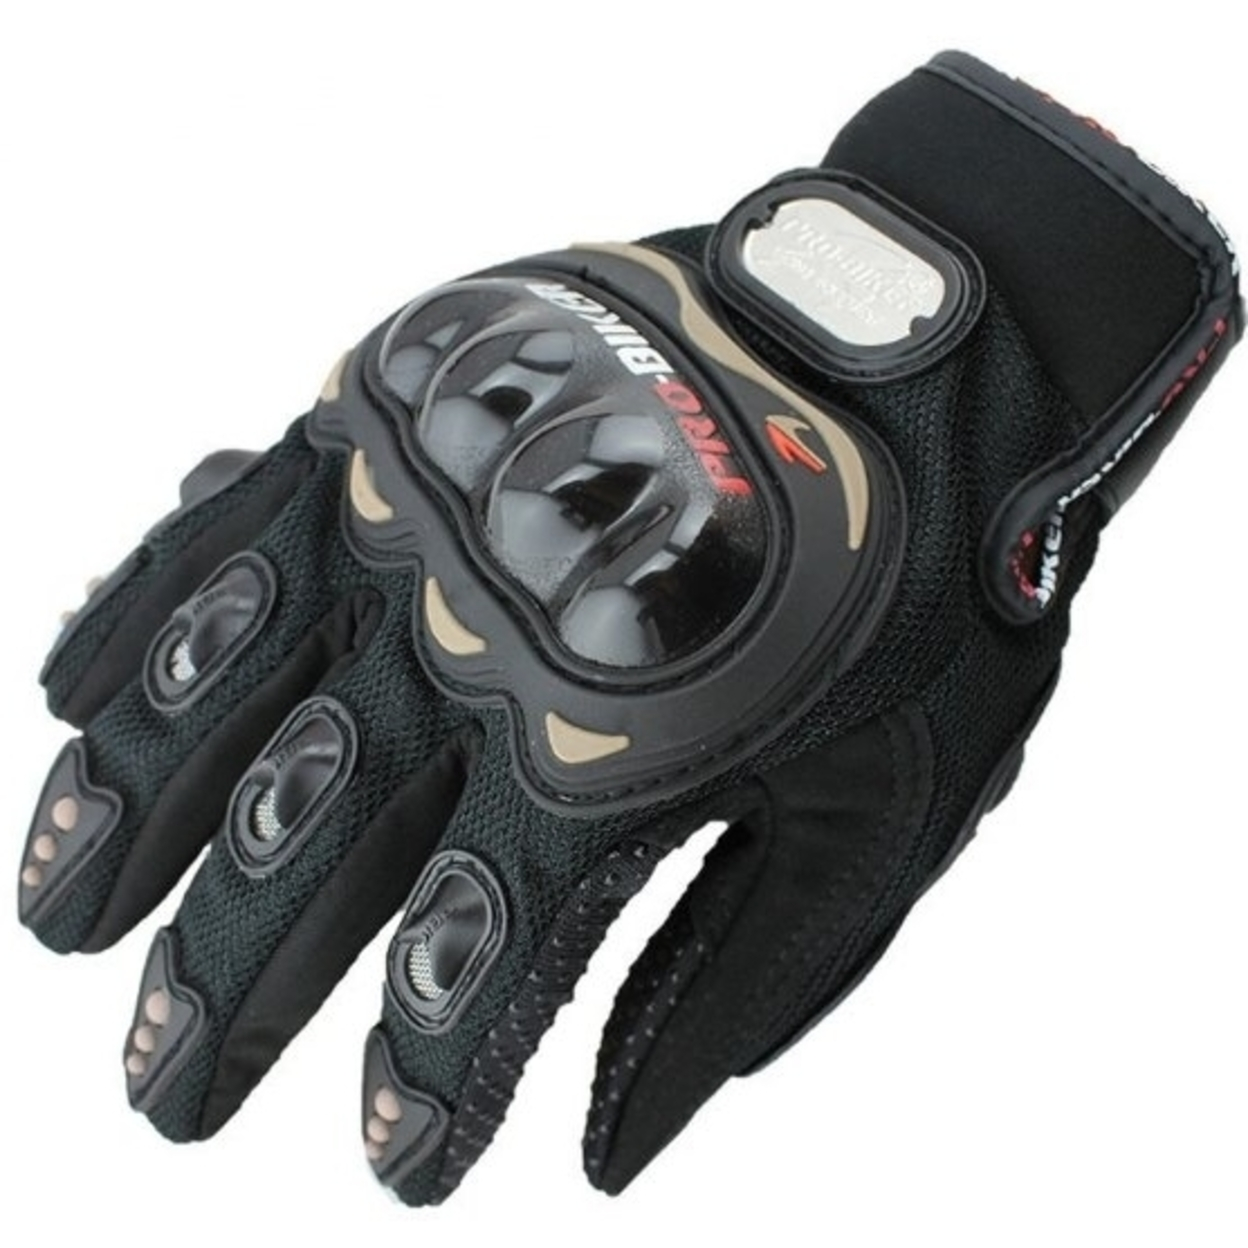 Pro-biker Full Finger Gloves 59f5f4a52a00e42c683e534a